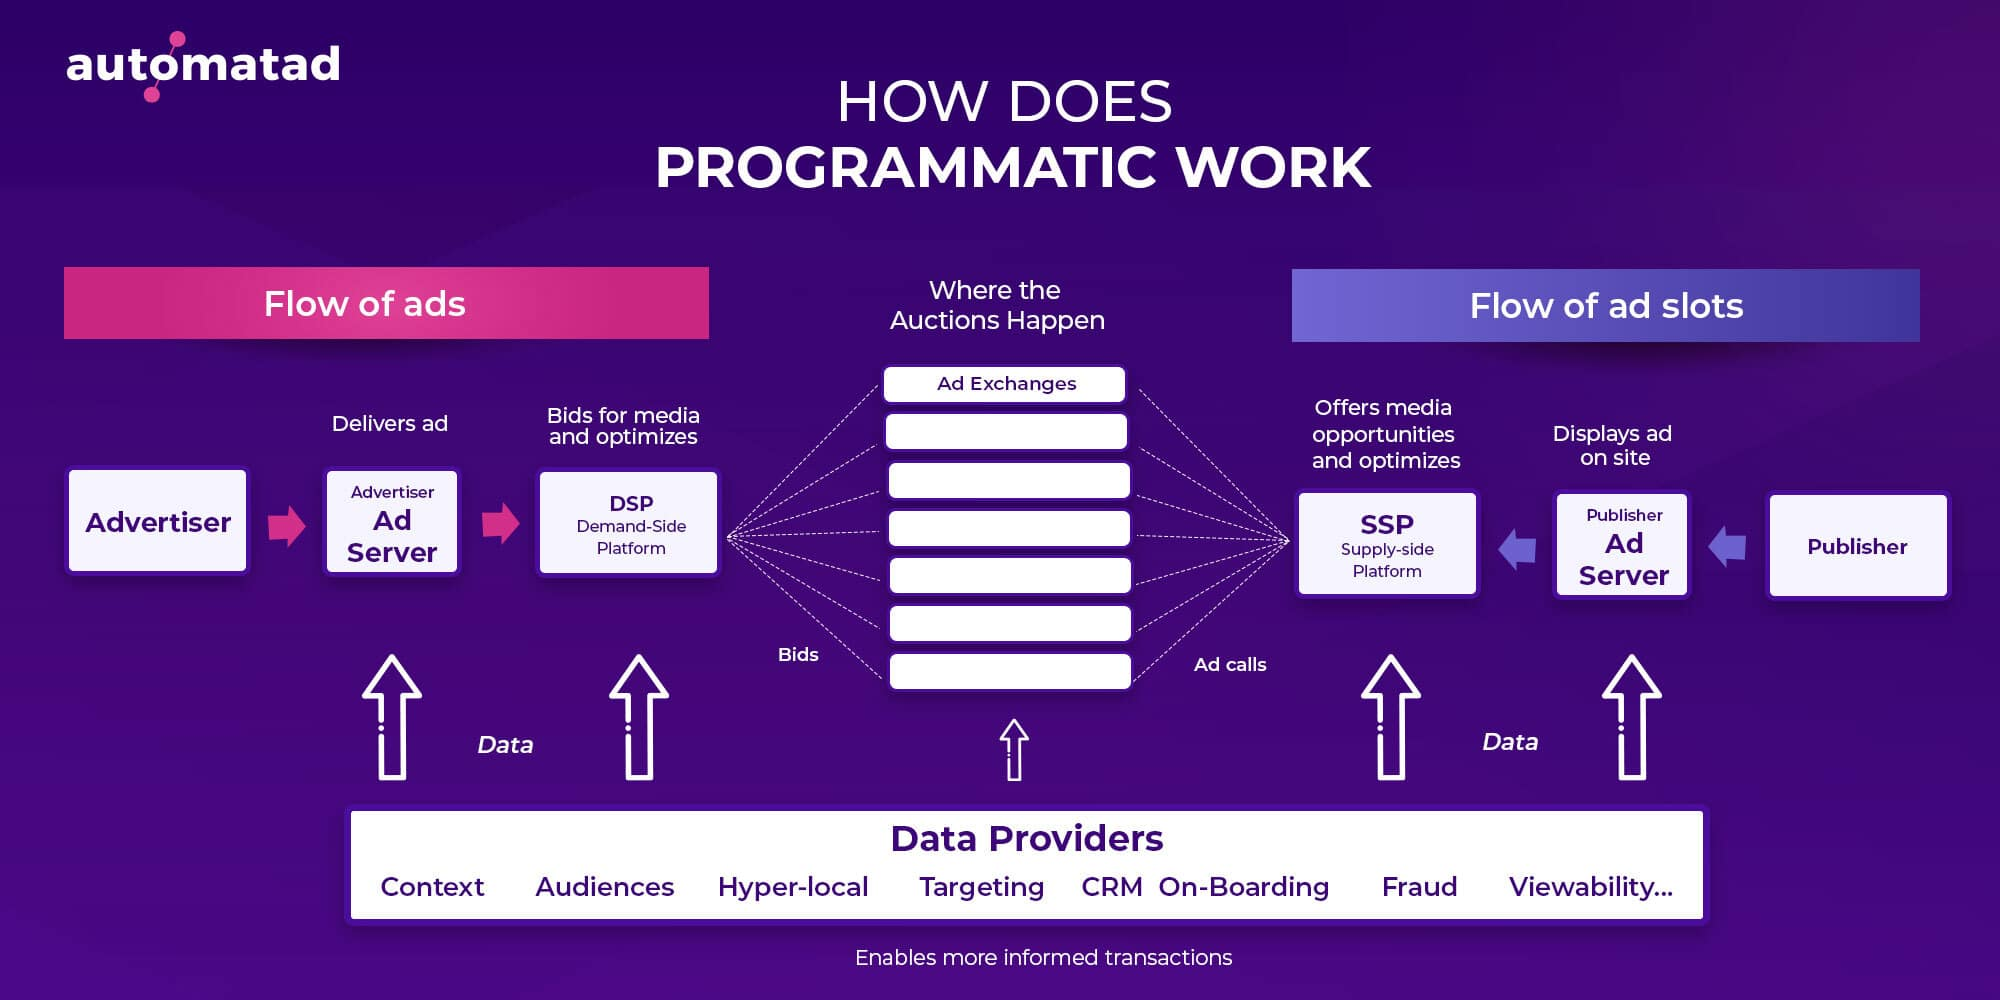 How does programmatic work